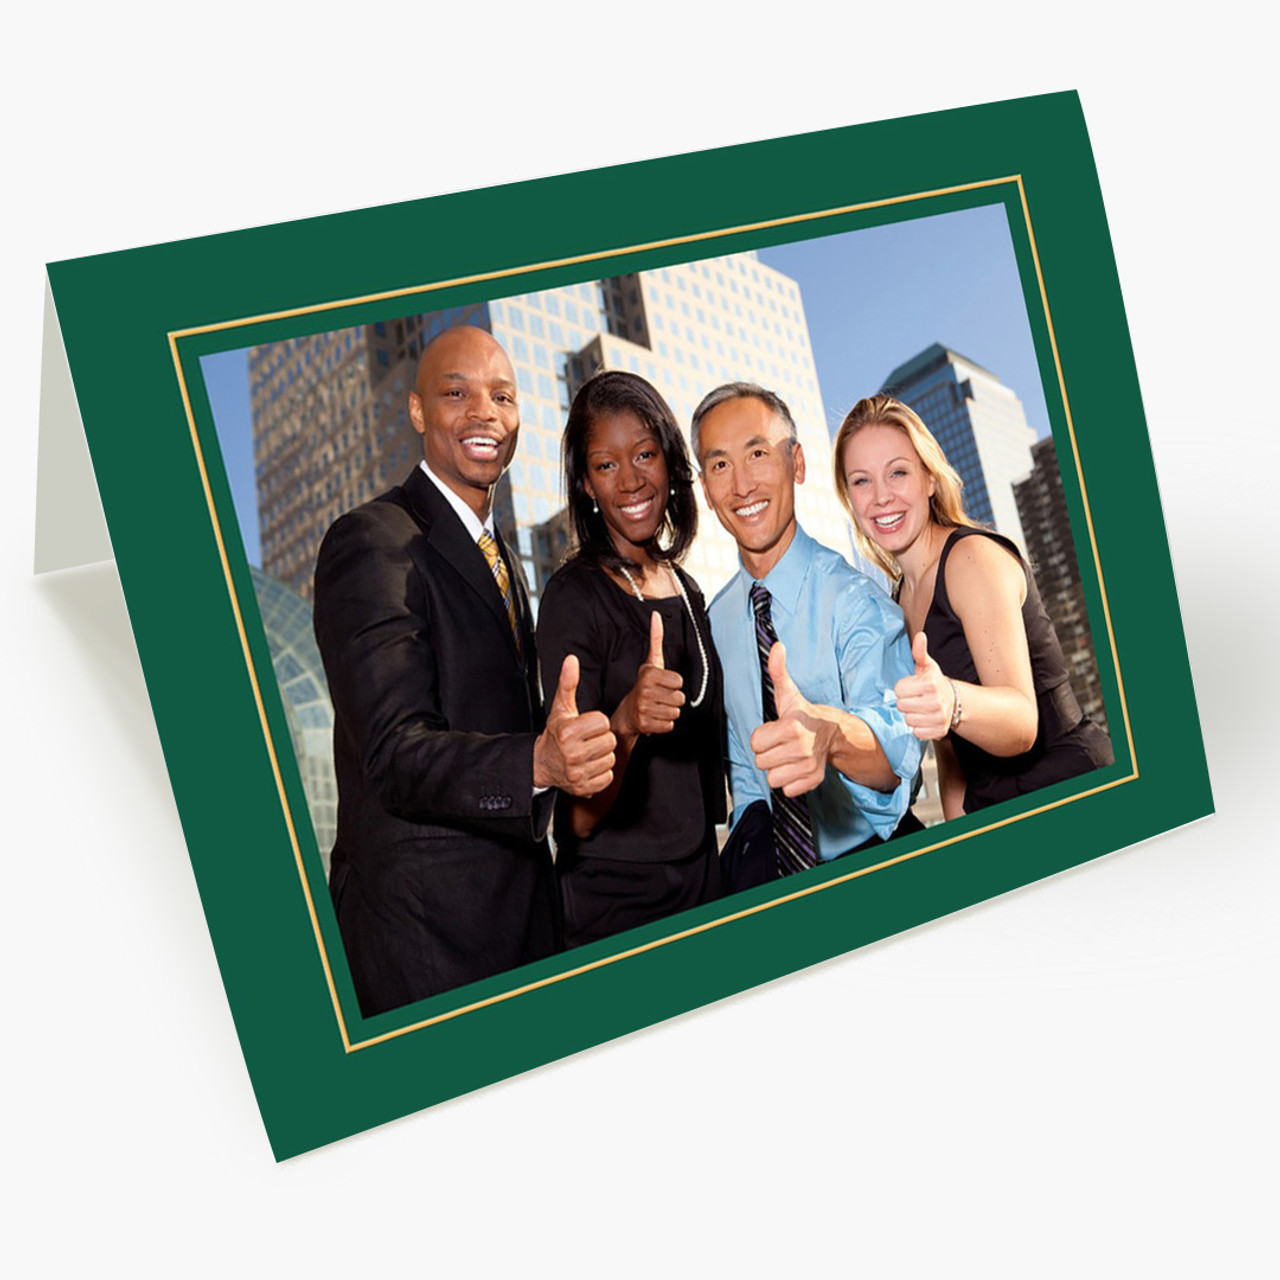 Green Border Photo - Matte Finish Christmas Card